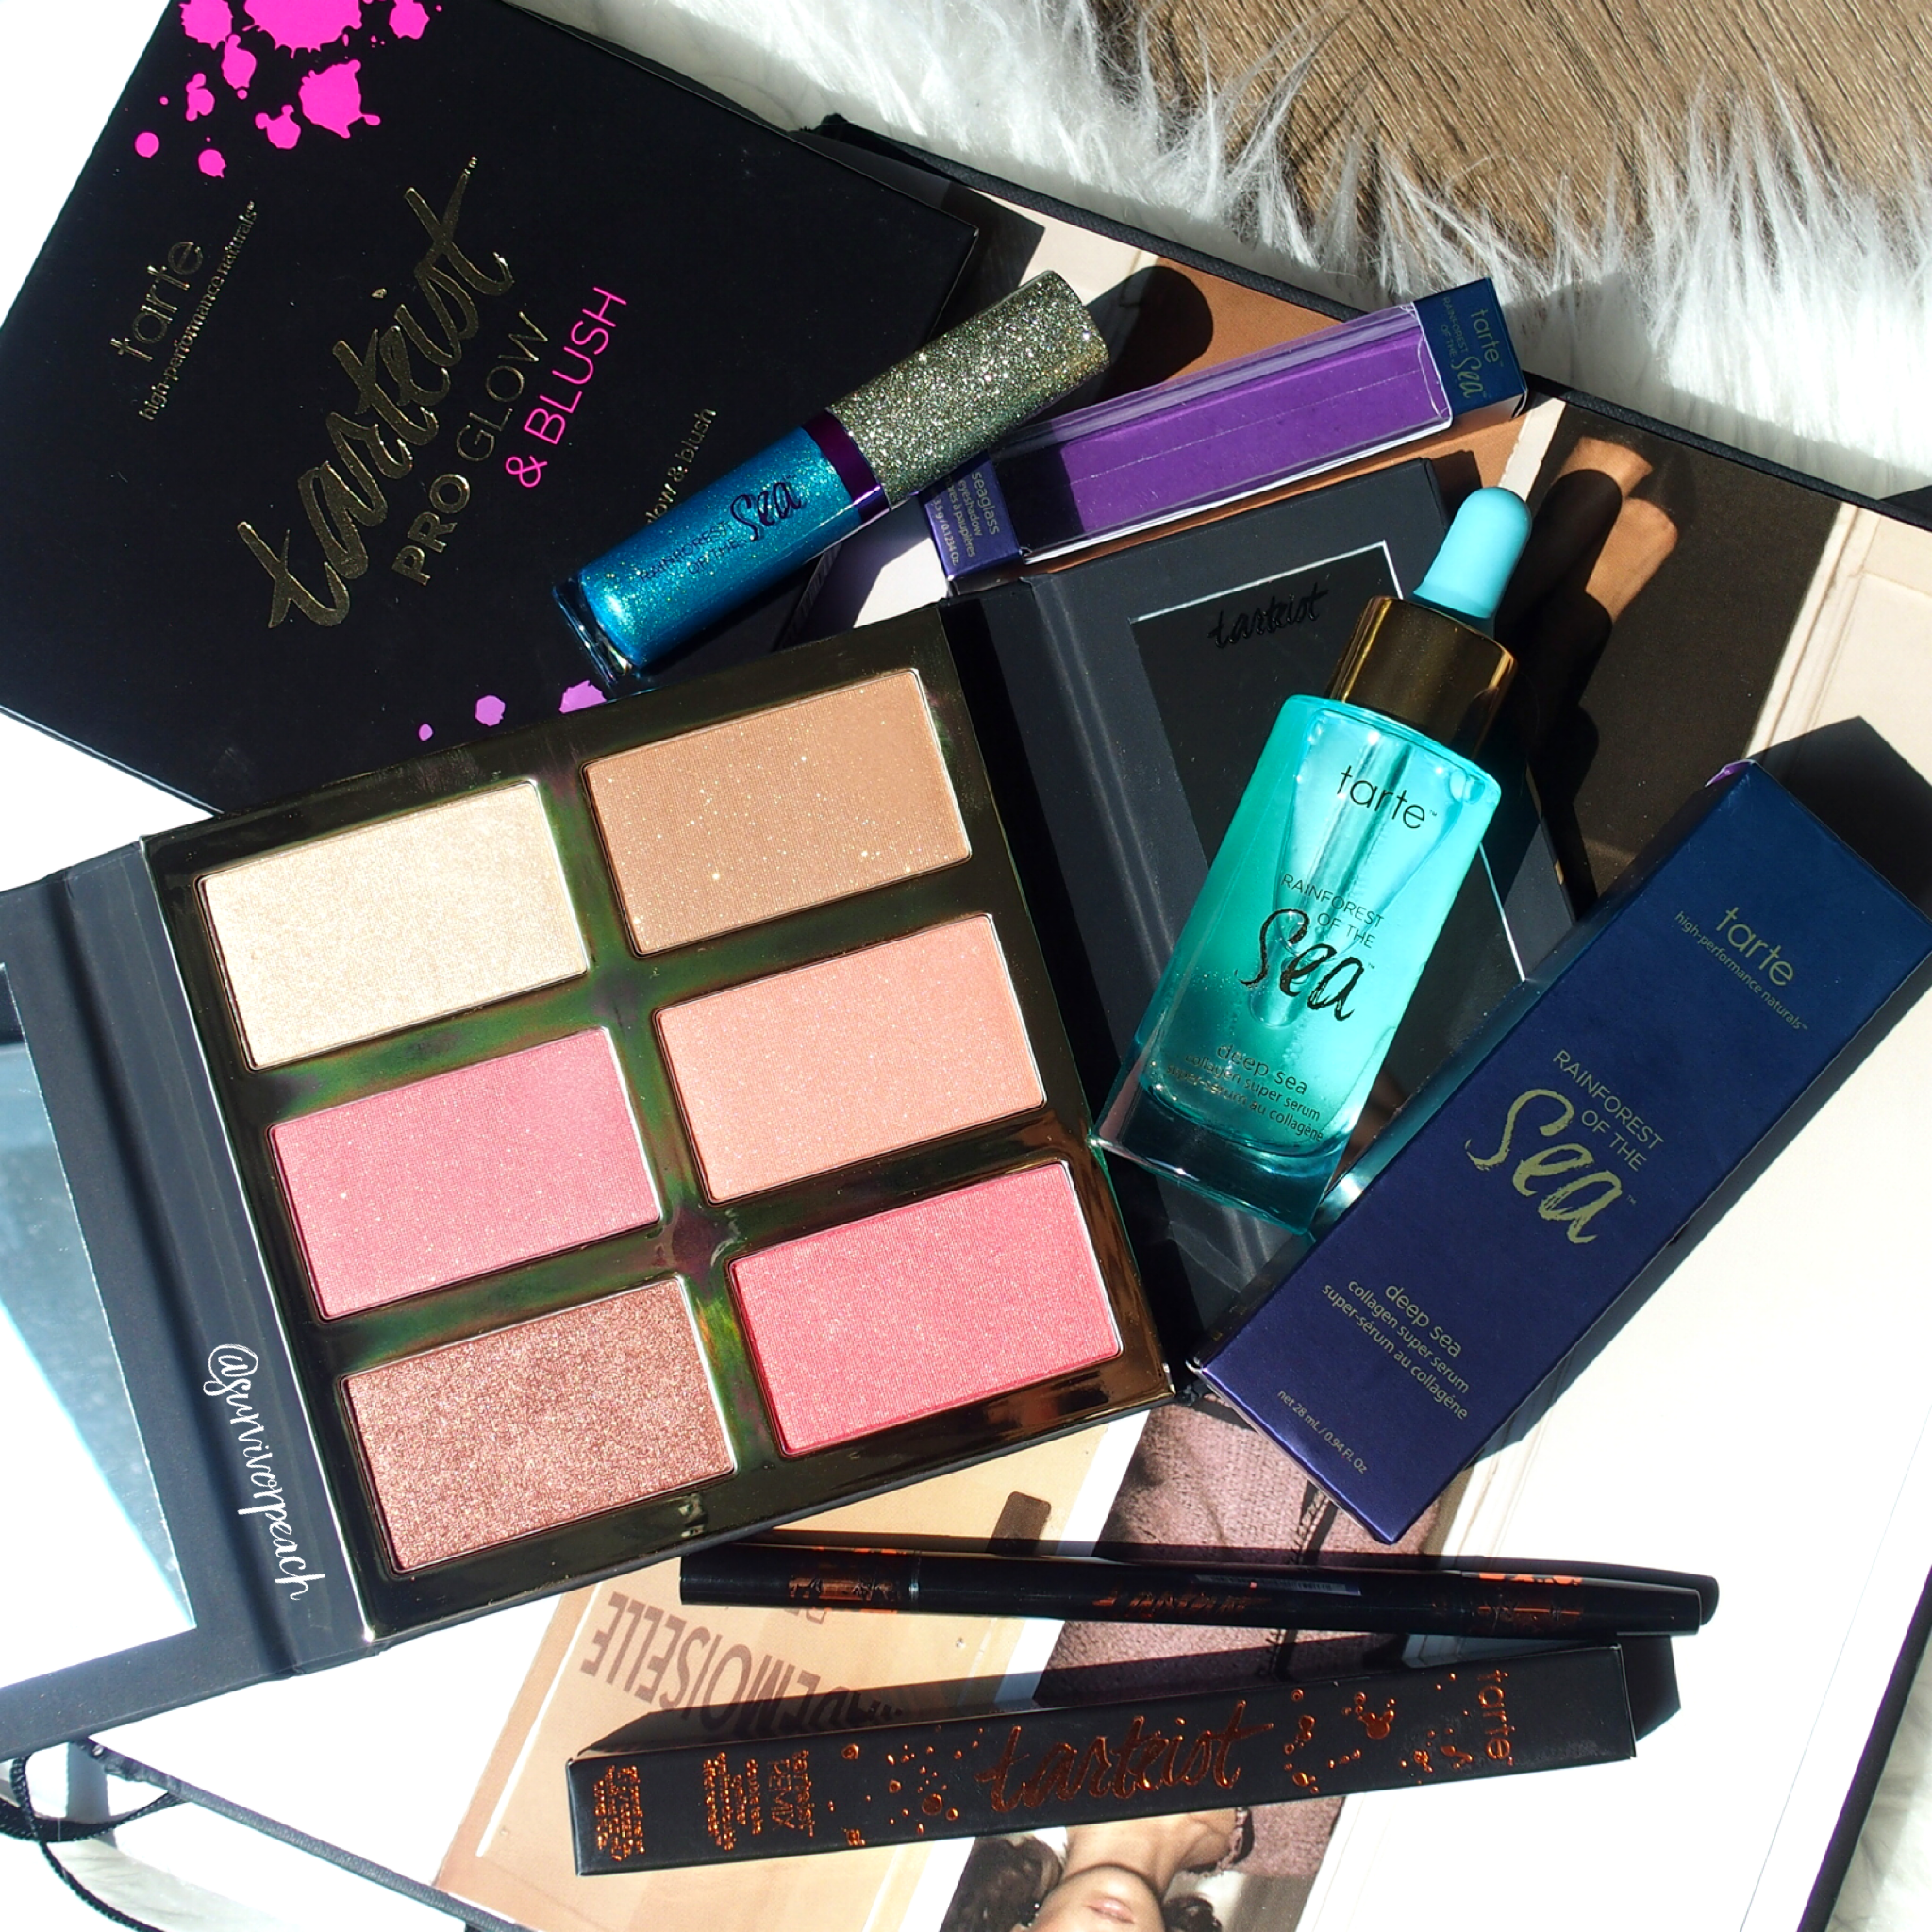 Tarte Rainforest of the Sea™ deep sea collagen super serum, Seaglass eyeshadow, tarteist™ PRO glow & blush